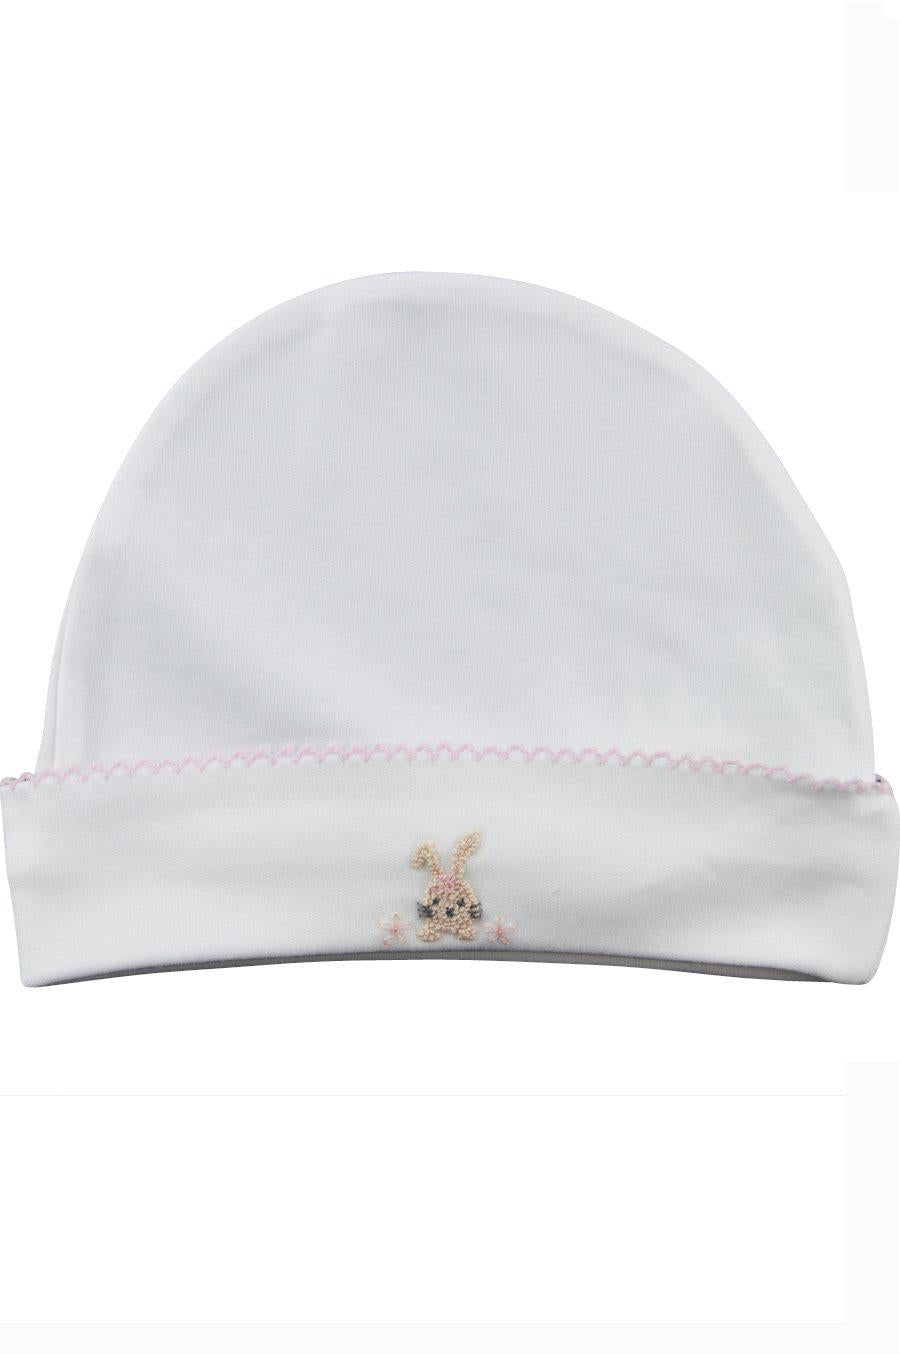 Pink Bunny Hat - Little Threads Inc. Children's Clothing